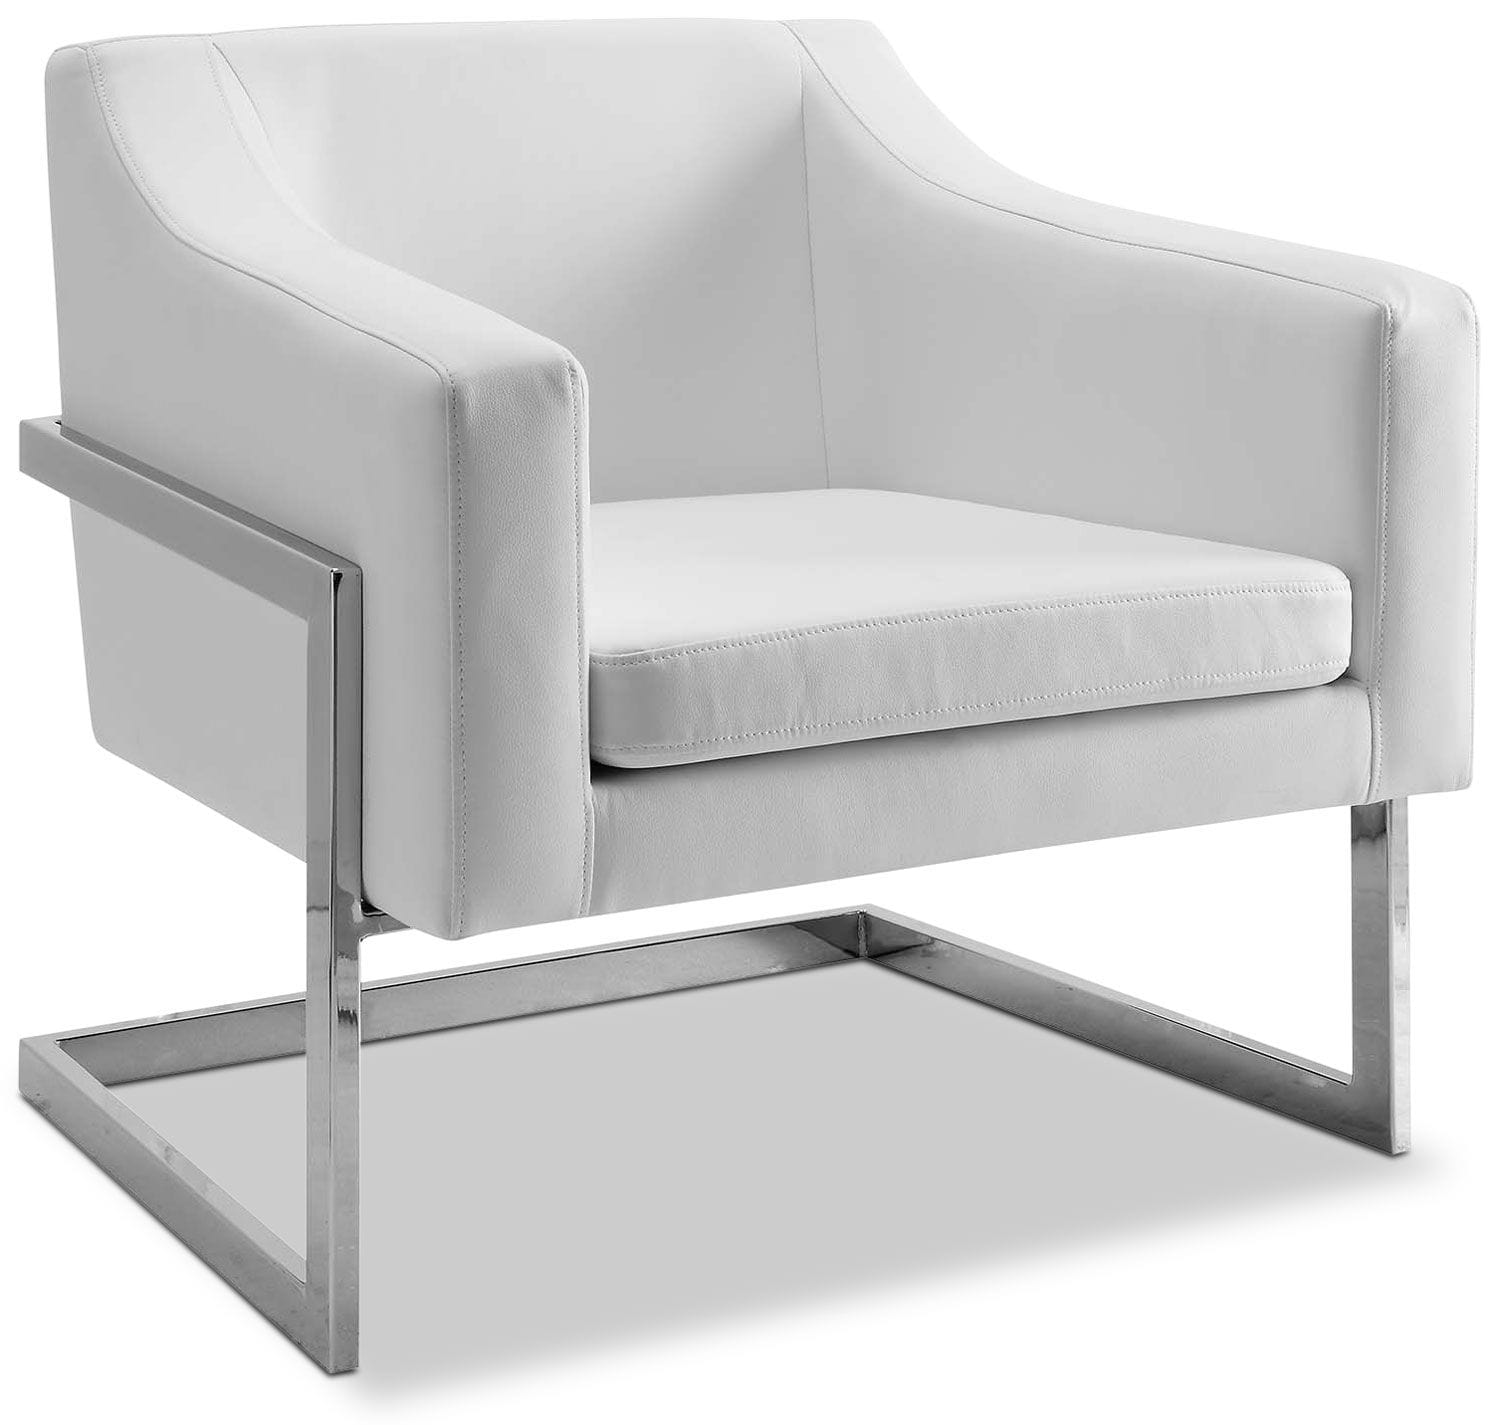 Living Room Furniture - Candid Bonded Leather Accent Chair - White